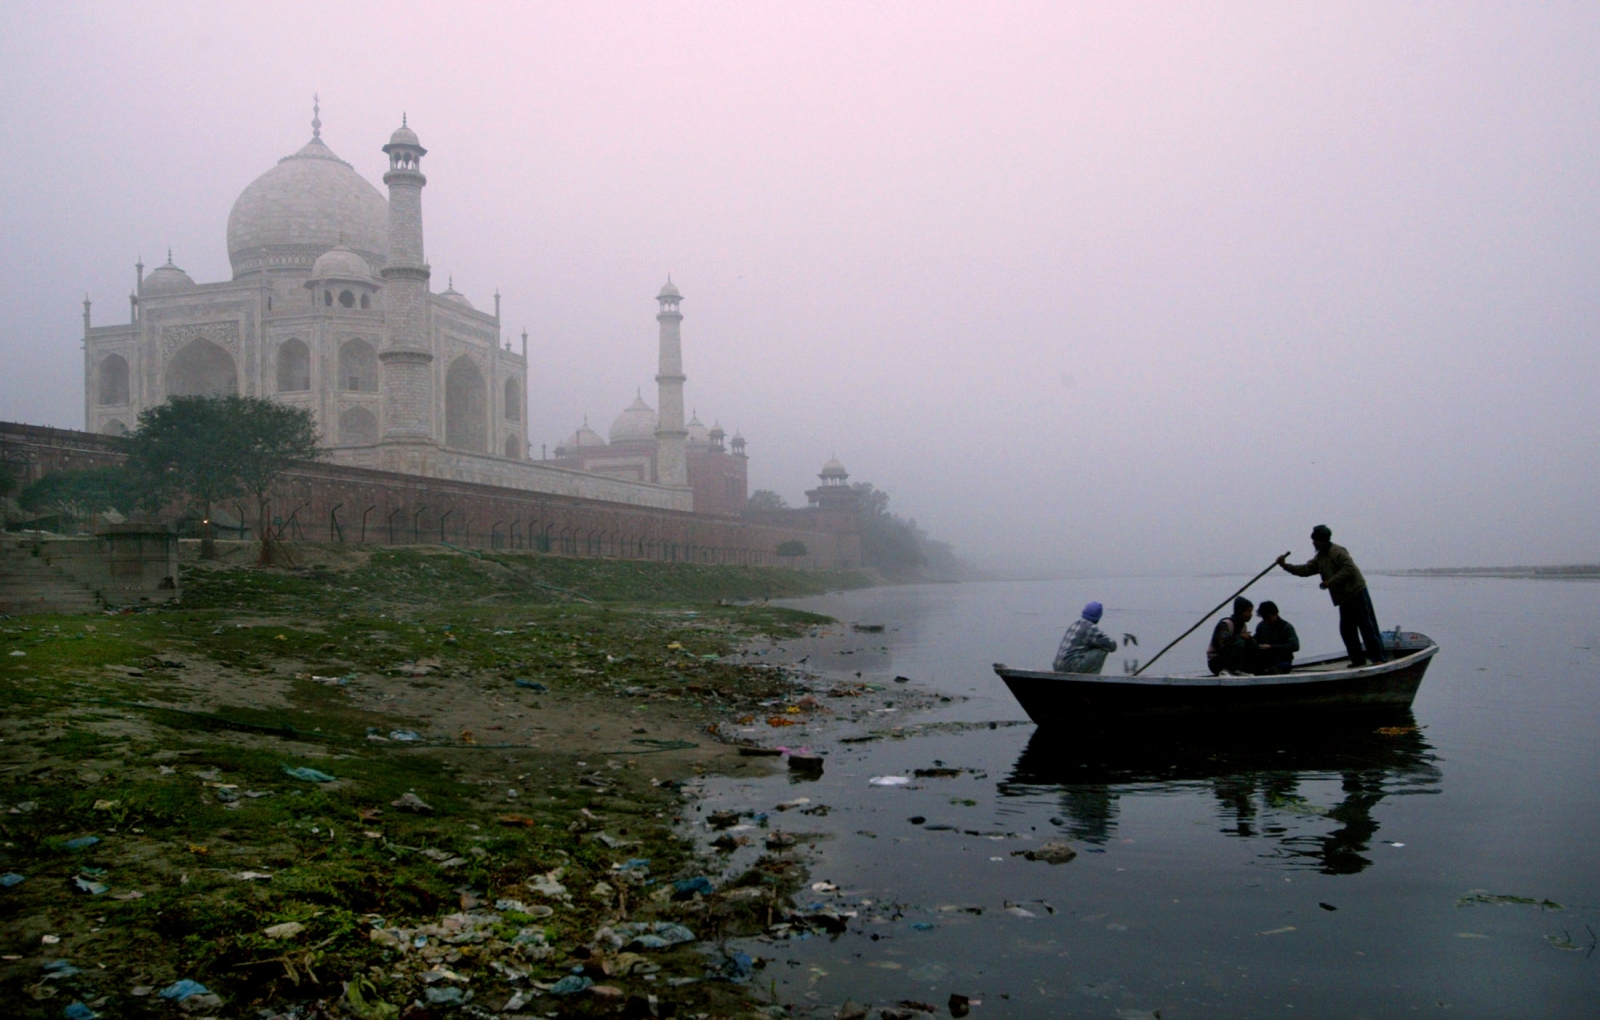 climate change india The climate of india is dominated by the monsoon season, which is the most important season of india, providing 80% of the annual rainfall the season extends from june to september with an average annual rainfall between 750–1,500 mm across the region.